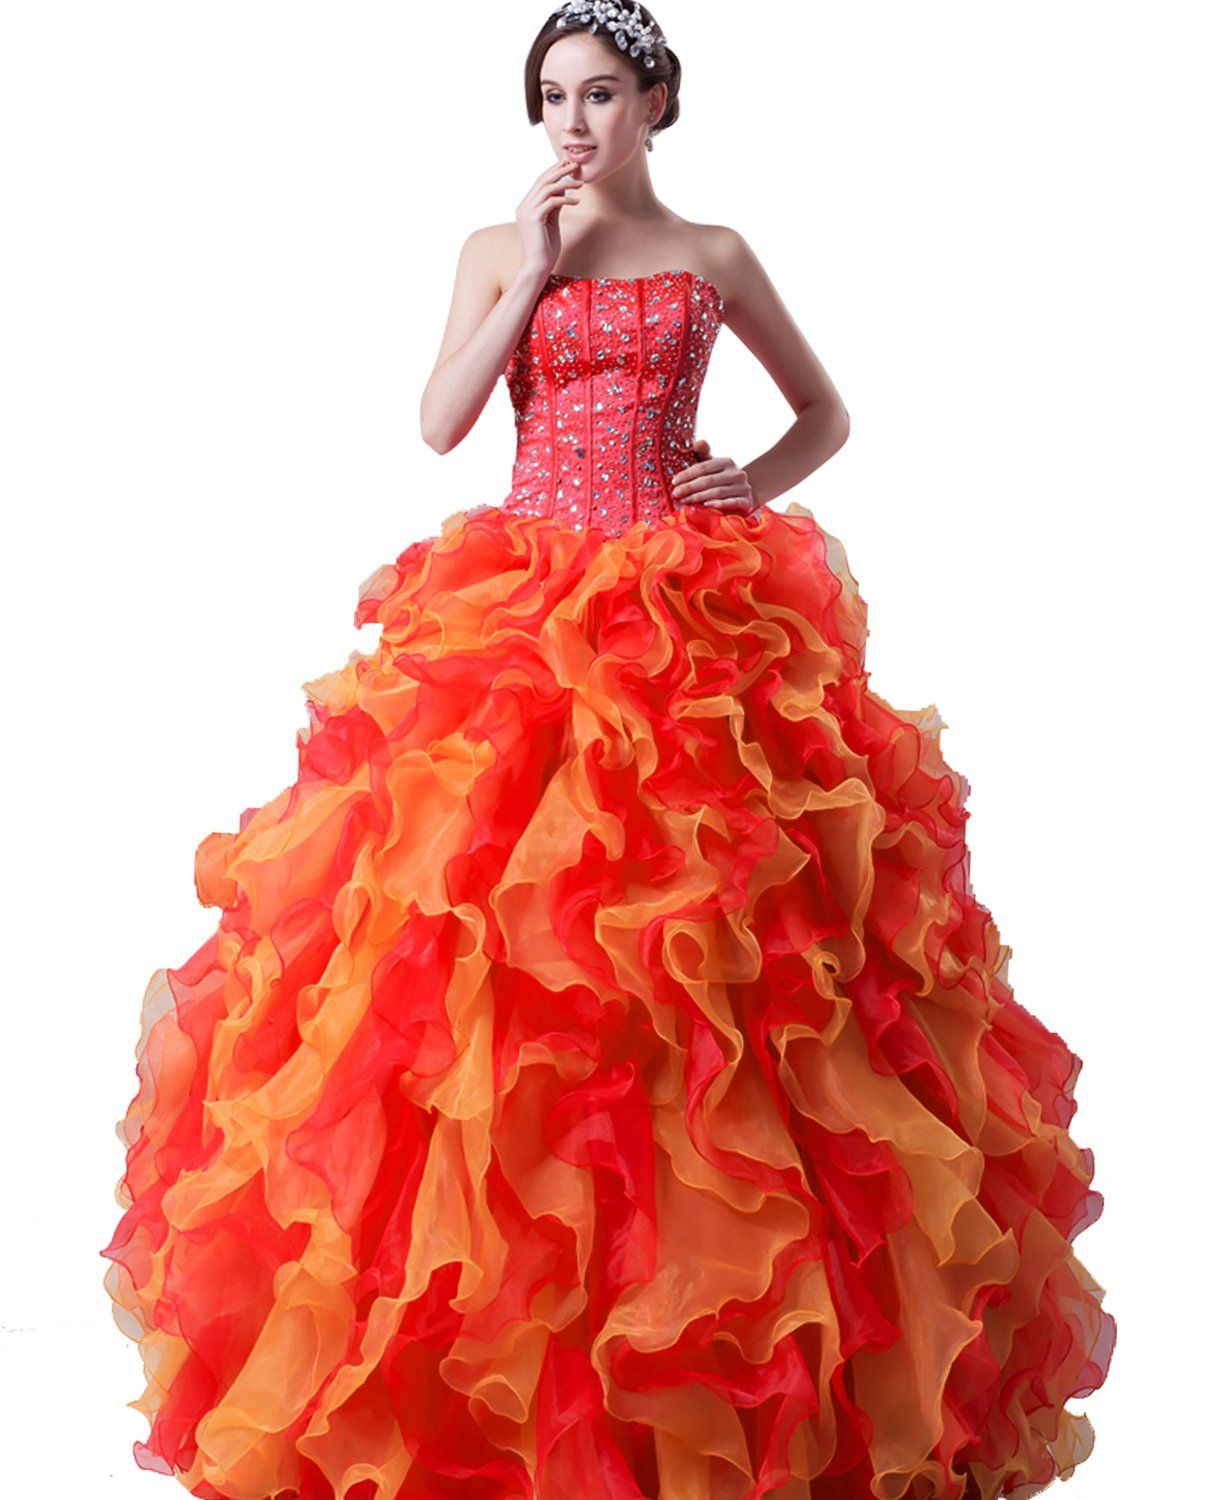 Cutietell womenus sweetheart formal quinceanera dress prom gown